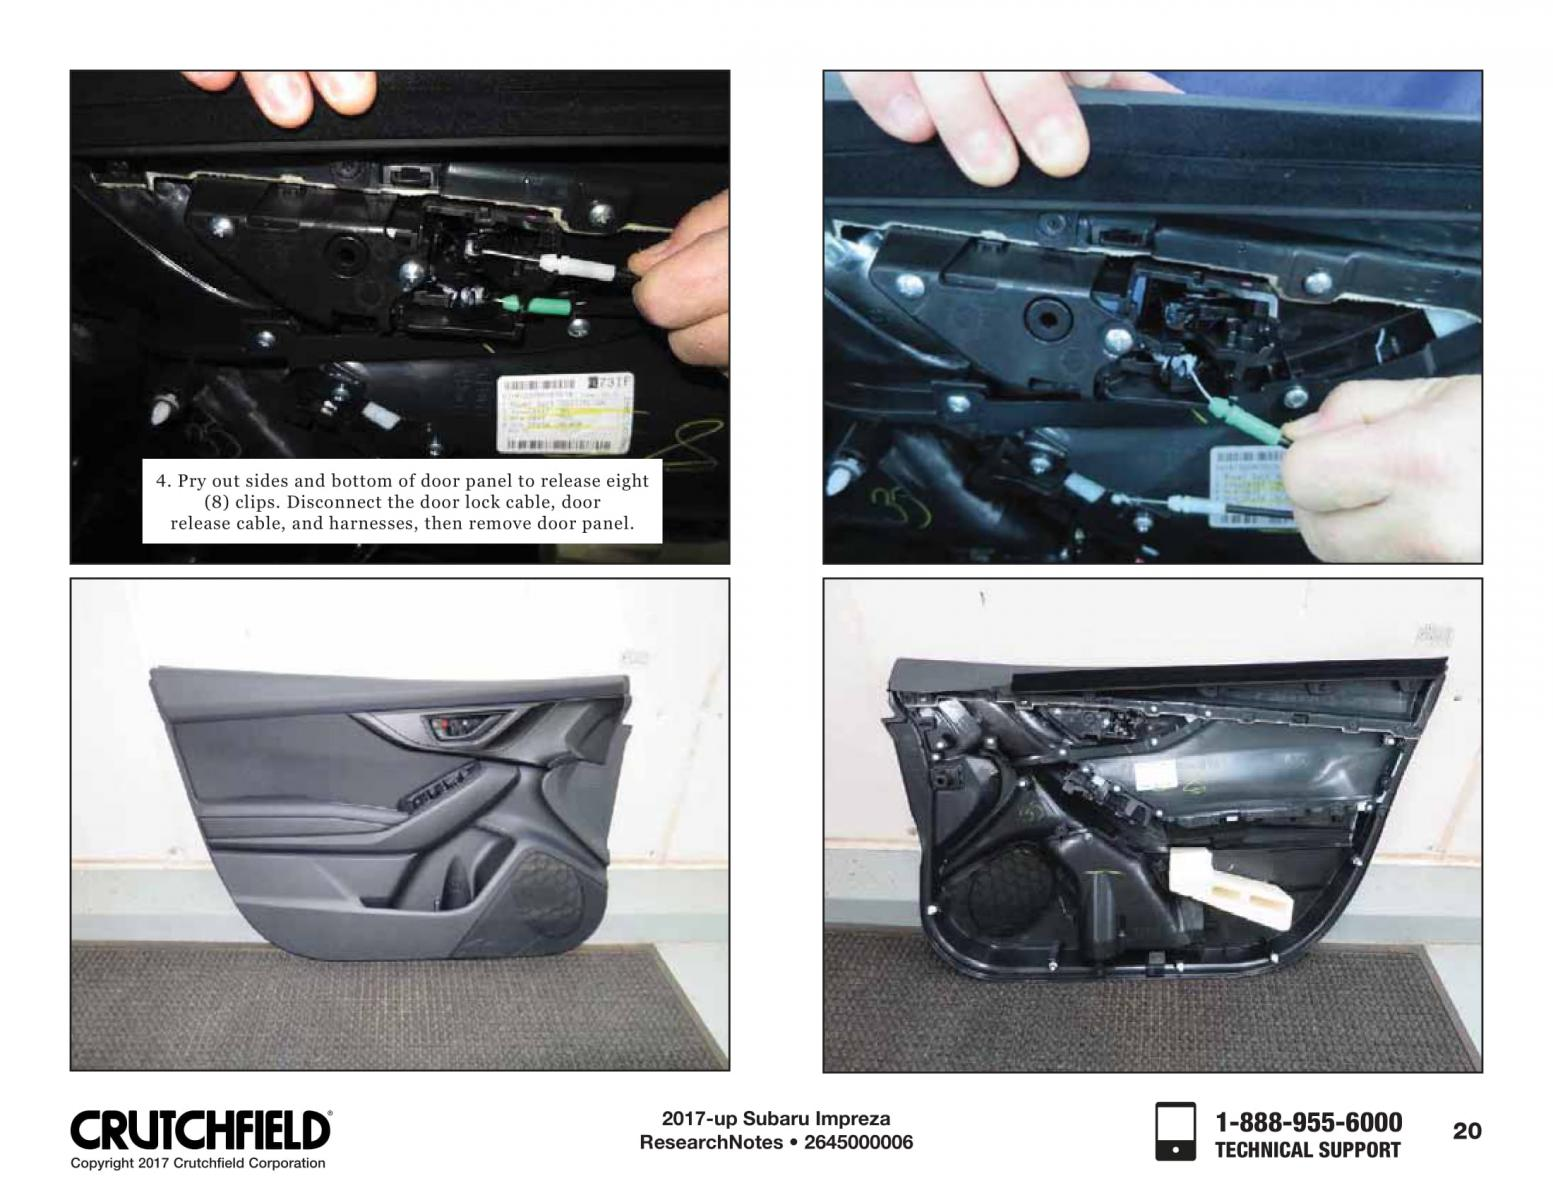 Audio Disassembly Instructions From The Crutch 5th Gen Subaru Crutchfield Wiring Harness Brz Click Image For Larger Version Name Crutchfieldinstructions 2645000006 20 Views